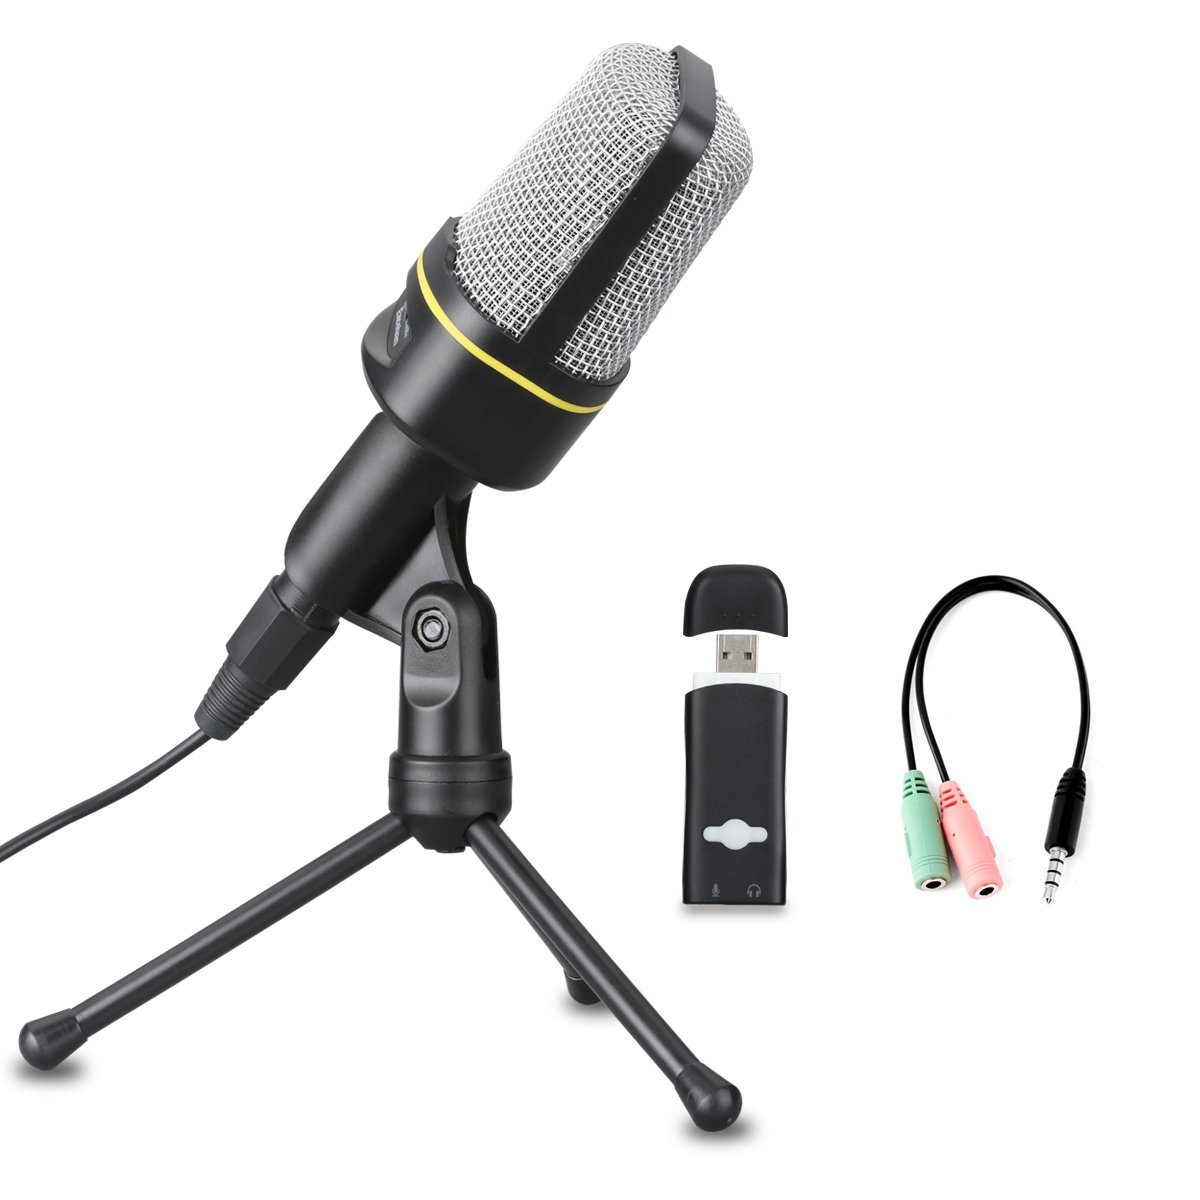 Excelvan Condenser Microphone Black SF-920 3.5mm Desktop Microphone with Volume Control and Tripod Stand Broadcasting Recording Podcasting Studio Mic for Mobile Phones, Laptops, Desktop (Black) Desktop ( Black)